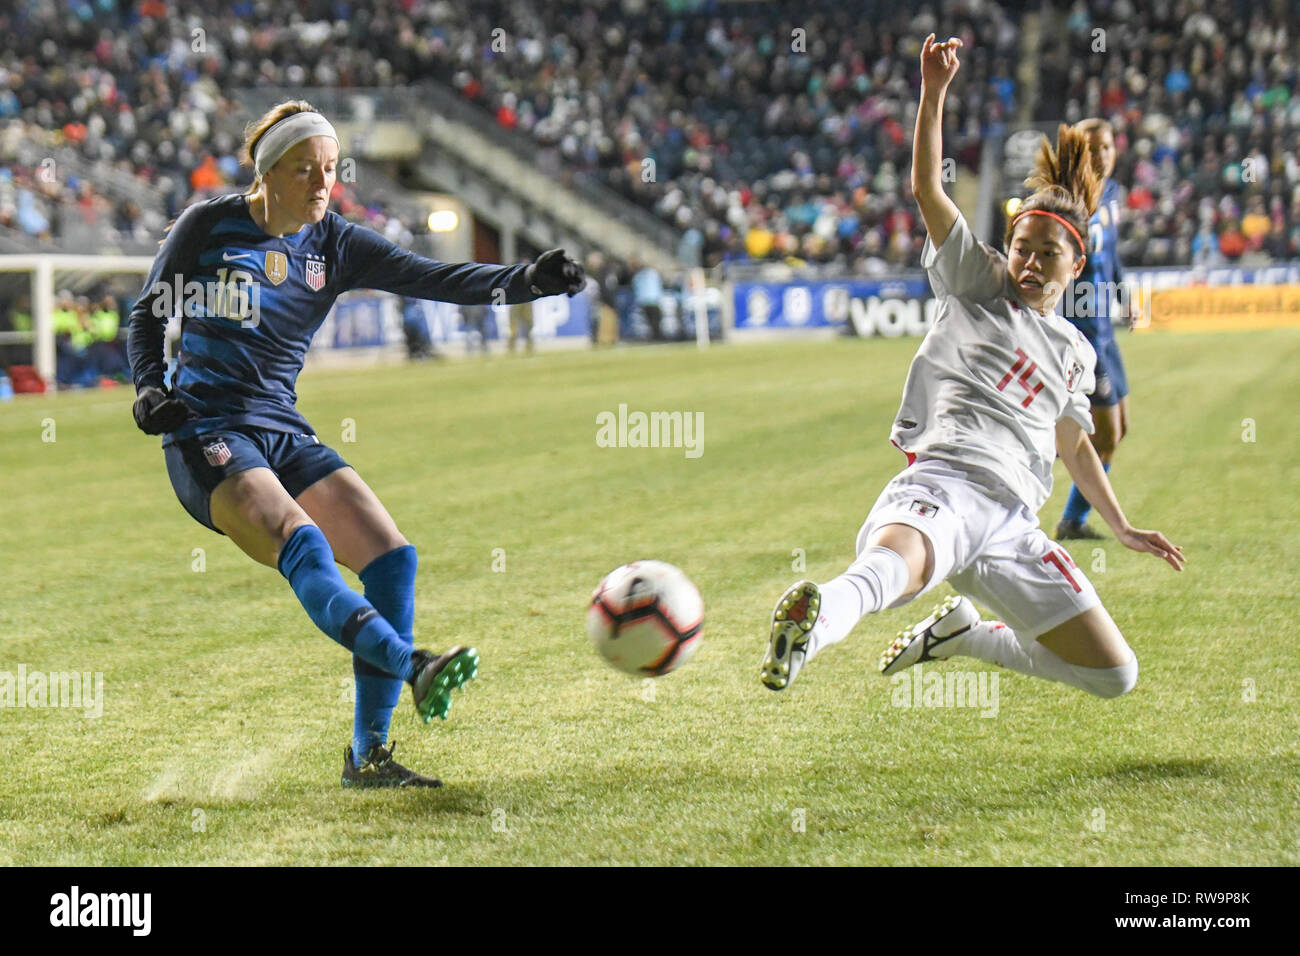 Rose Lavelle in a 2019 world cup friendly - SheBelieves Cup featuring the United States women's national team . Professional women soccer players - Stock Image